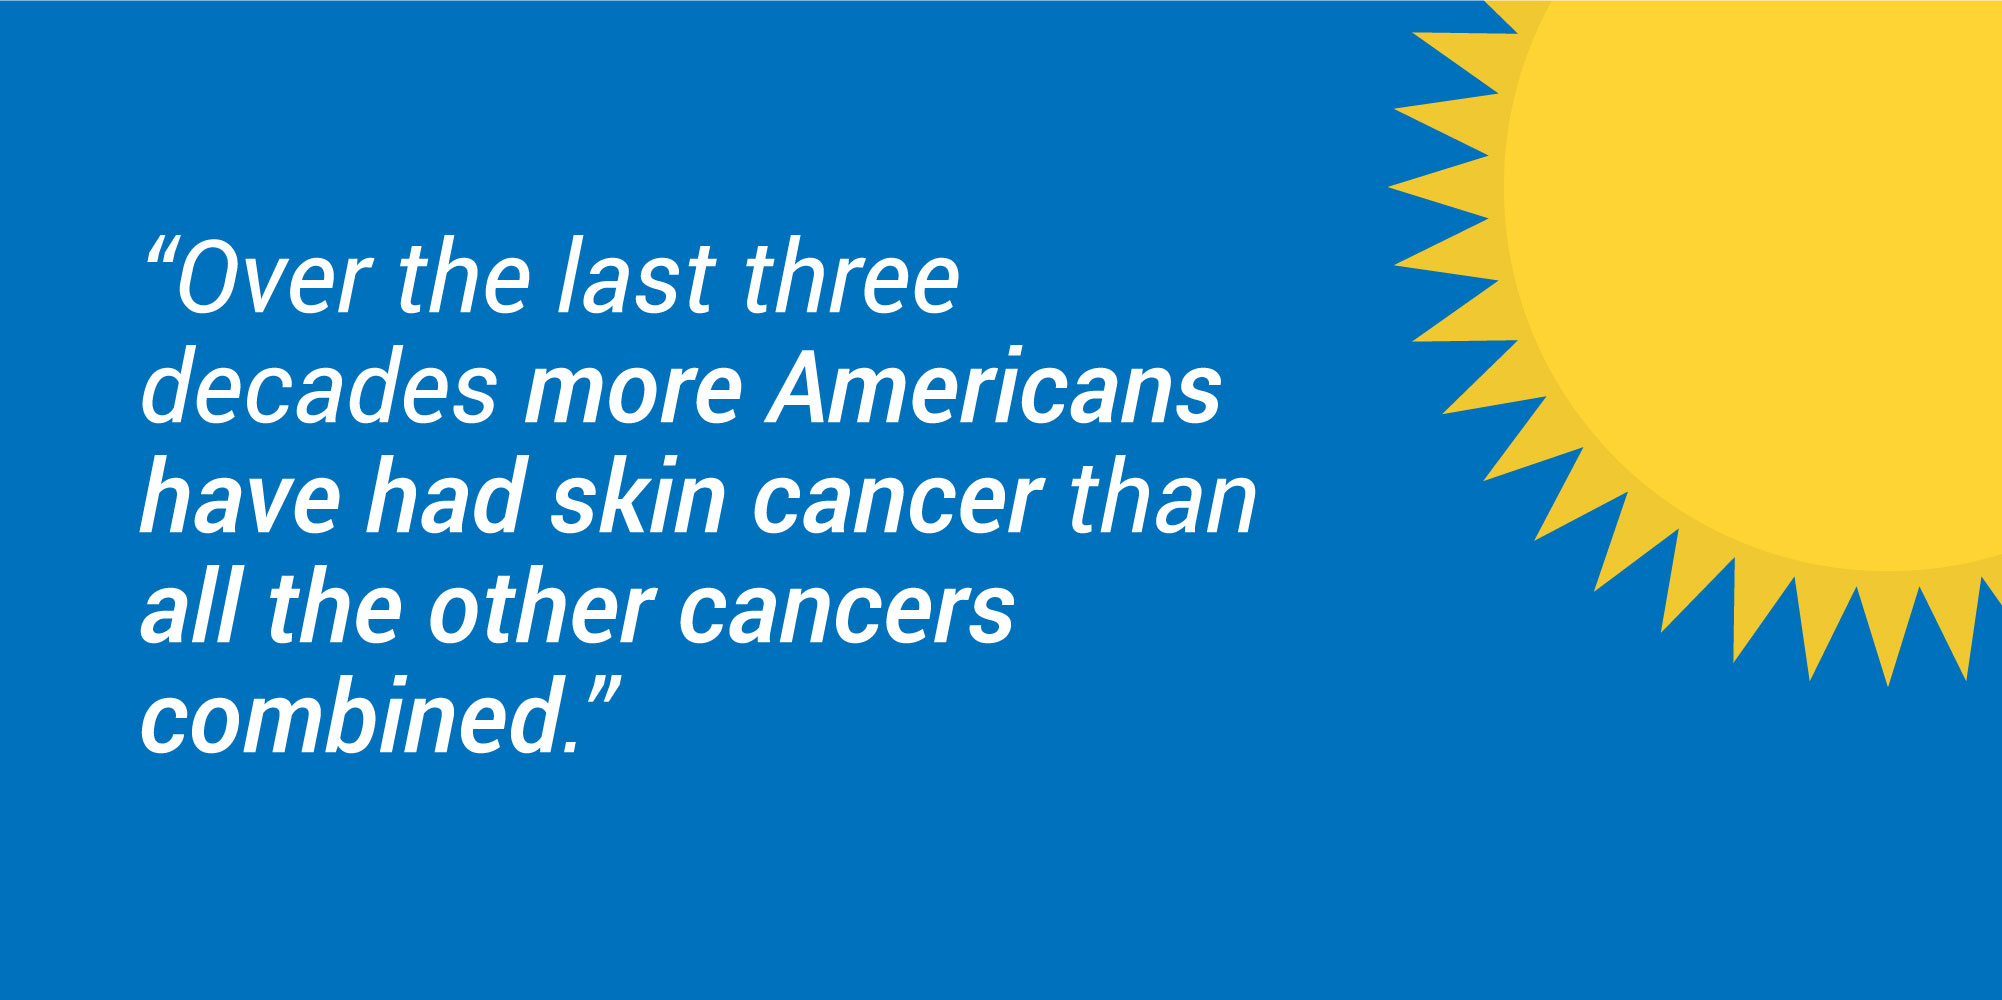 How can you reduce your chances of getting skin cancer?